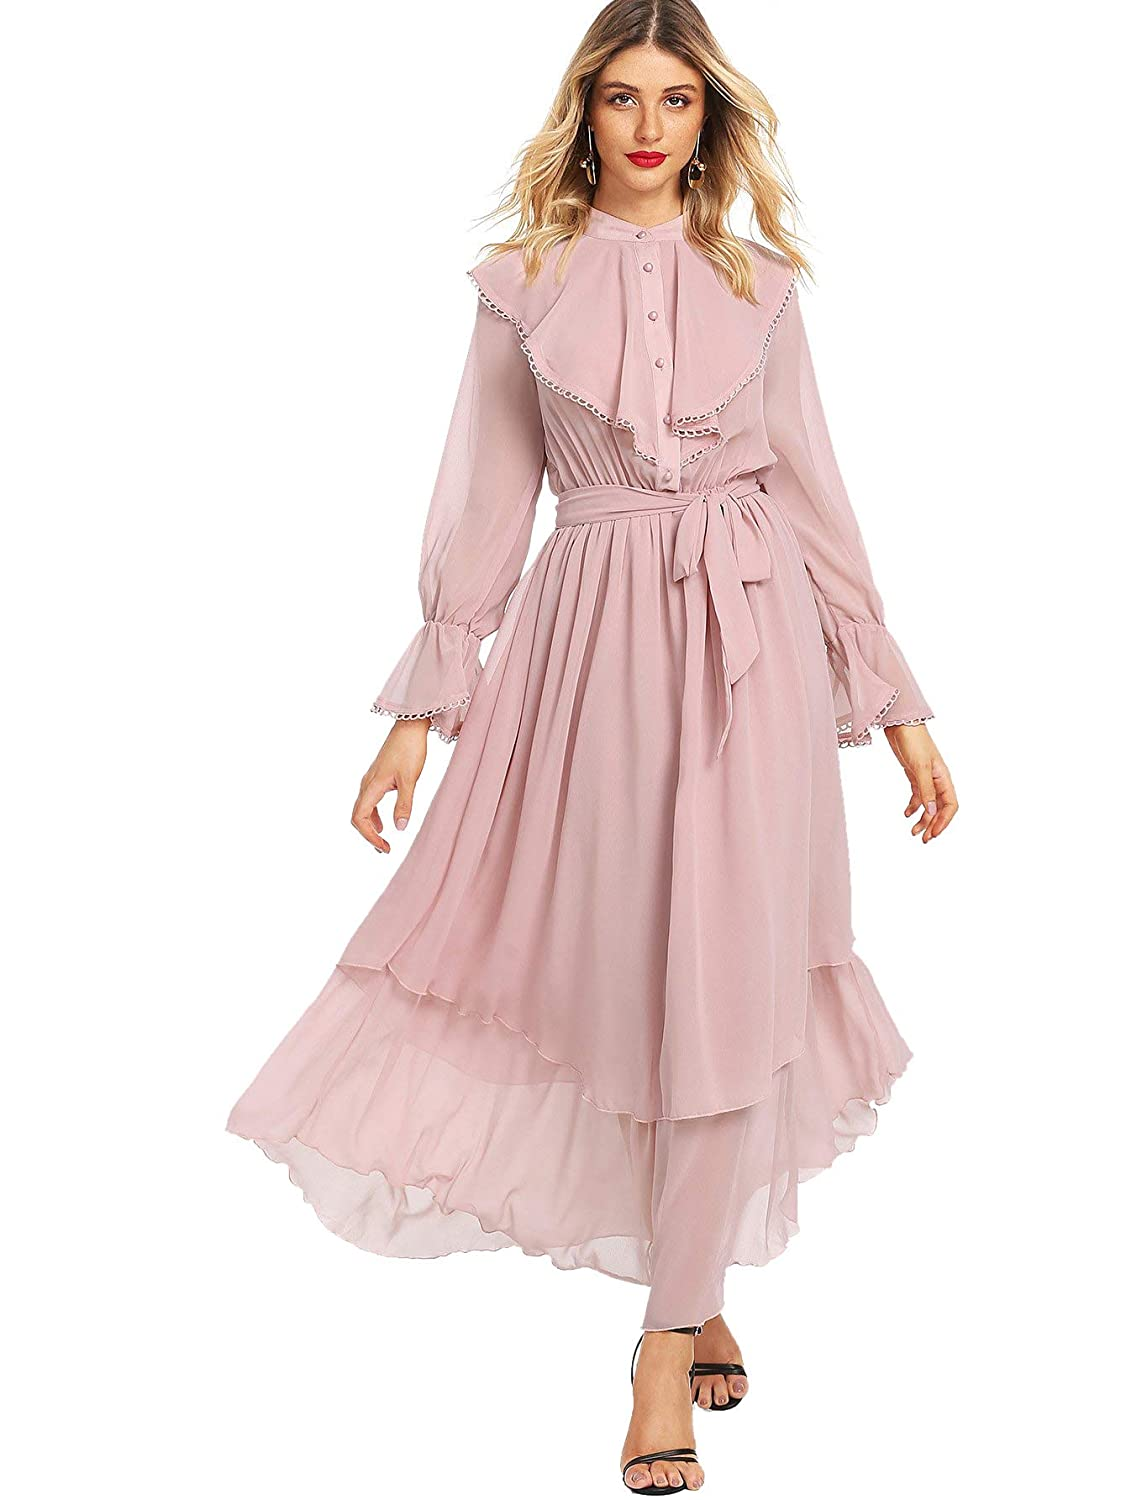 Vintage Tea Dresses, Floral Tea Dresses, Tea Length Dresses Milumia Womens Contrast Lace Ruffle Detail Crochet Trim Belted Tiered Layer Flowy Maxi Dress $26.99 AT vintagedancer.com